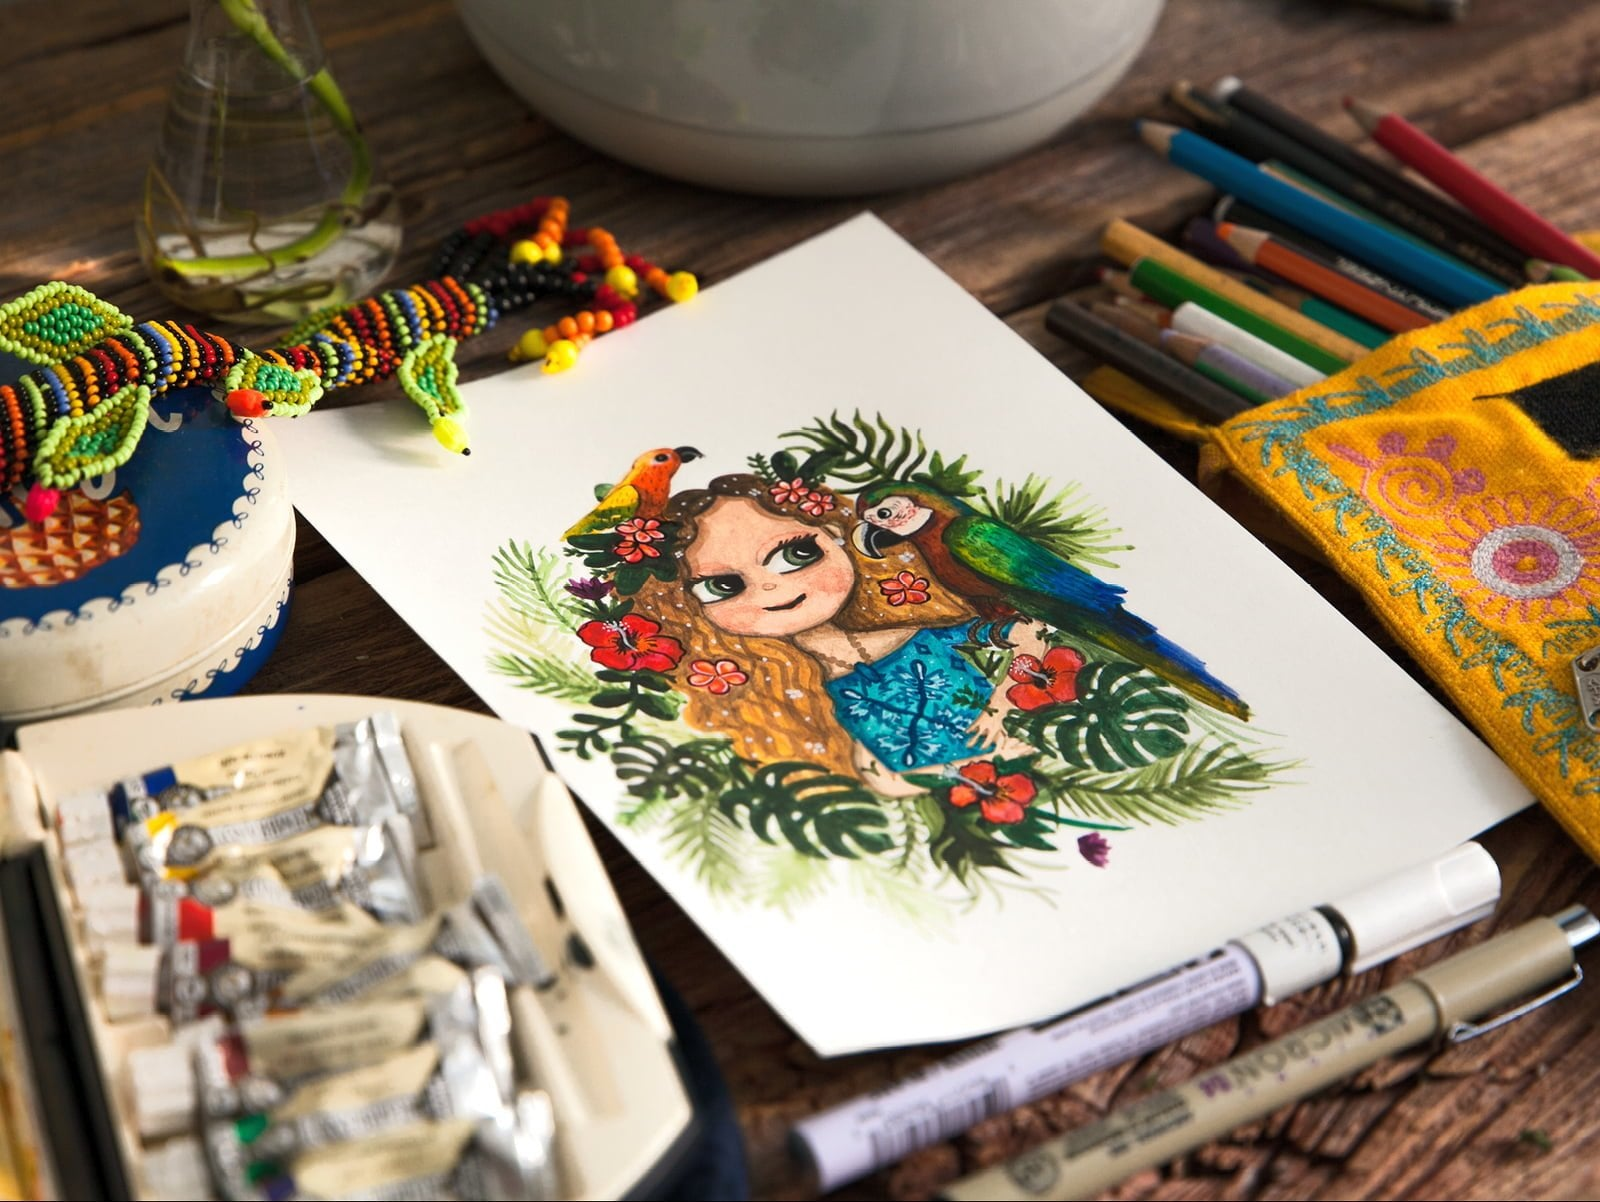 Custom watercolor portrait of a blond girl with flowers in her hair and a parrot on her shoulder